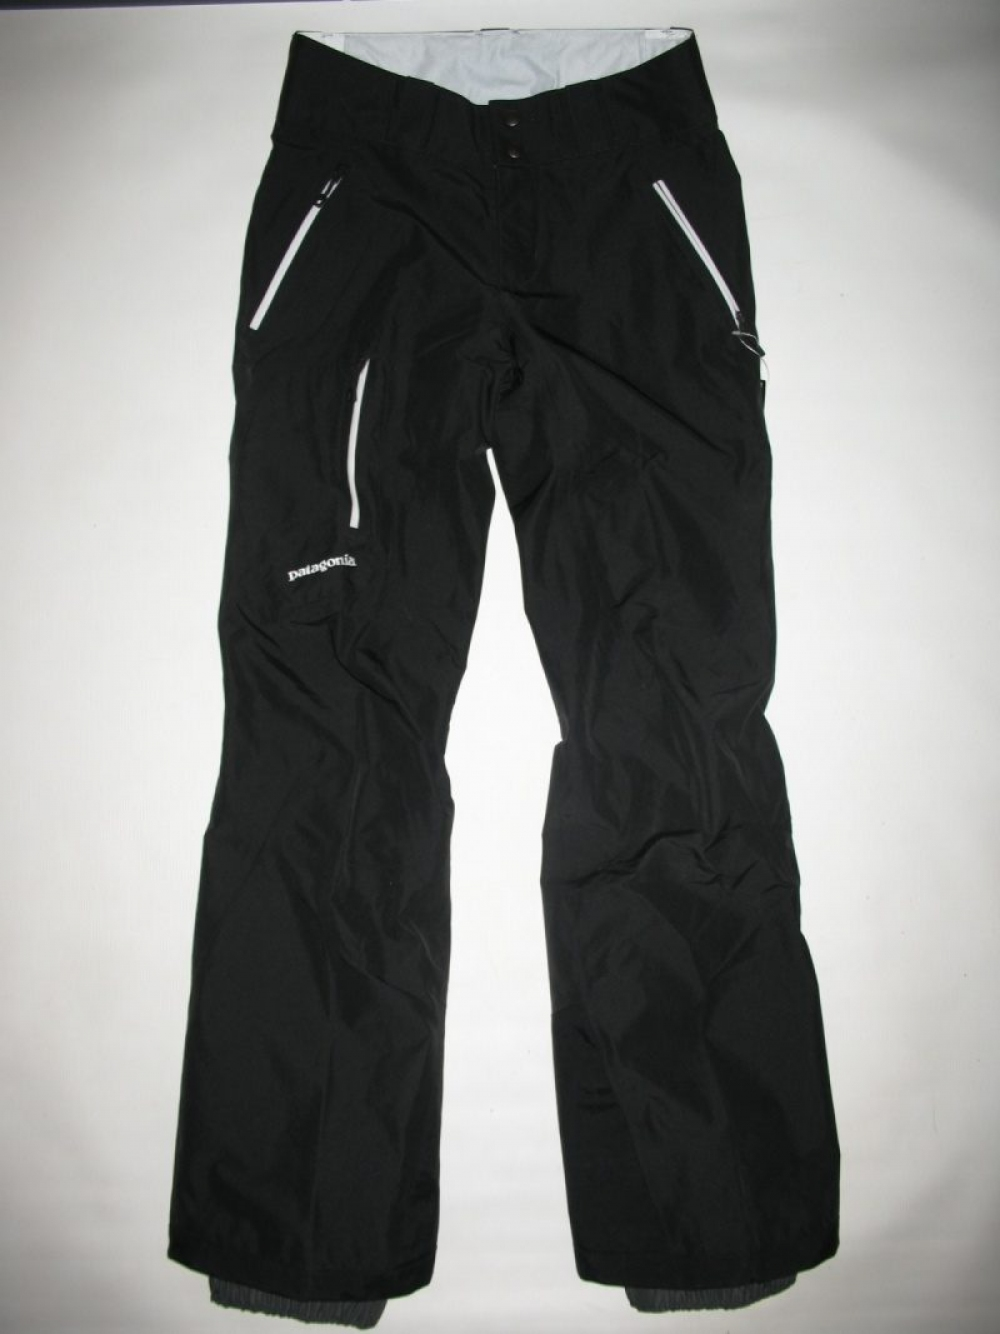 Штаны PATAGONIA Powder Bowl Pants lady (размер XS/S) - 18026